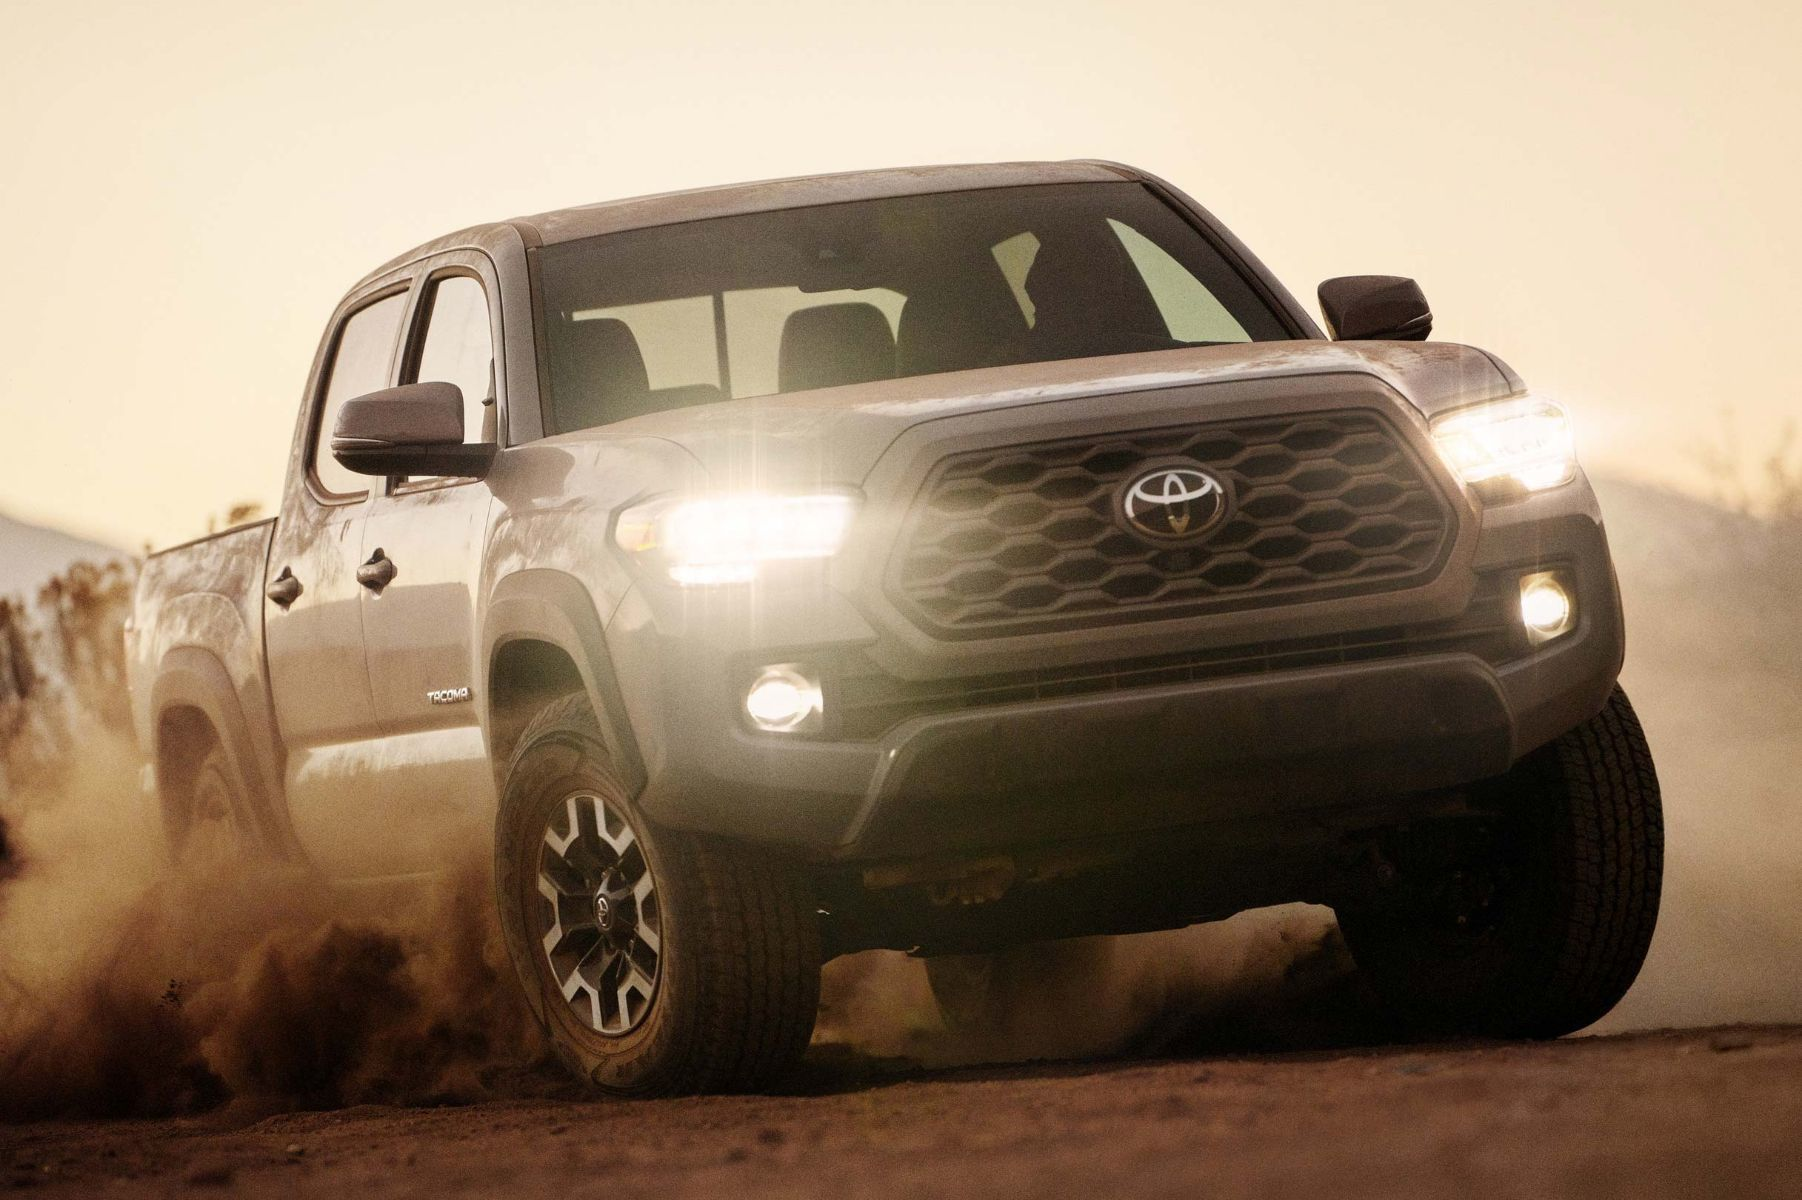 Toyota Tacoma 2020 : la domination se poursuit!